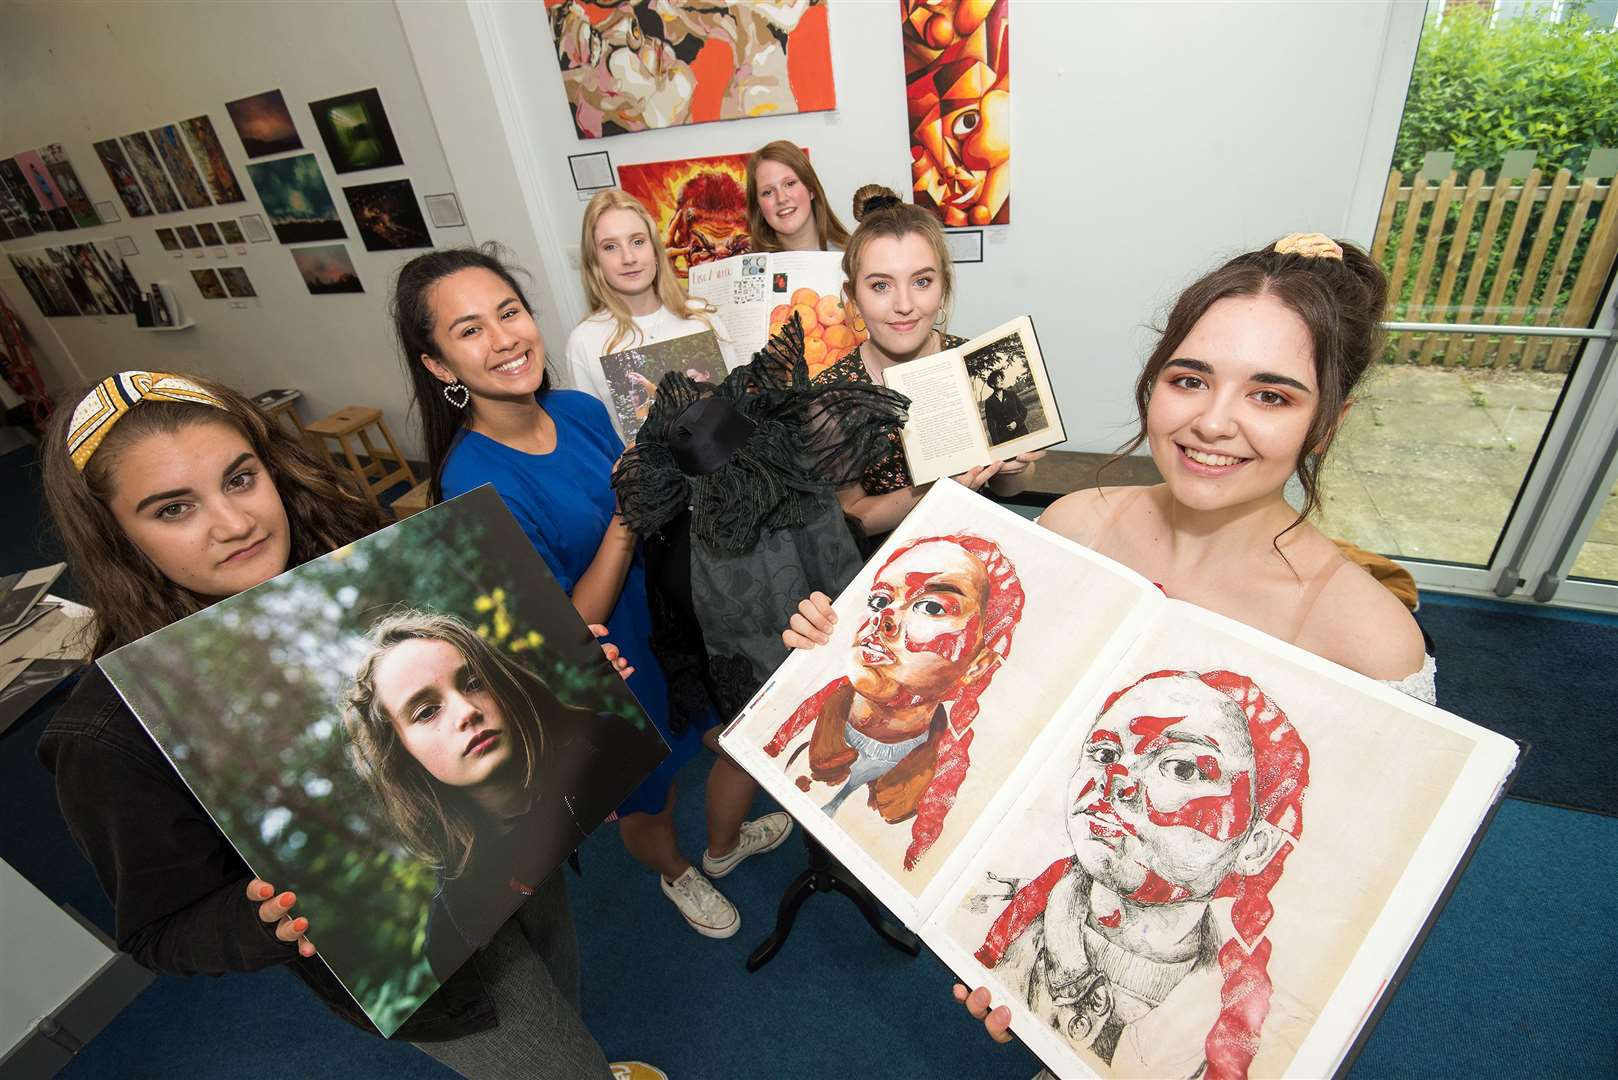 Rosina Wager, Lucia Henry, Abigail Kerry, Freya Willcox, Jess Hobbs and Rachel Simpson at the A-level Art Exhibition. Picture by Mark Westley.